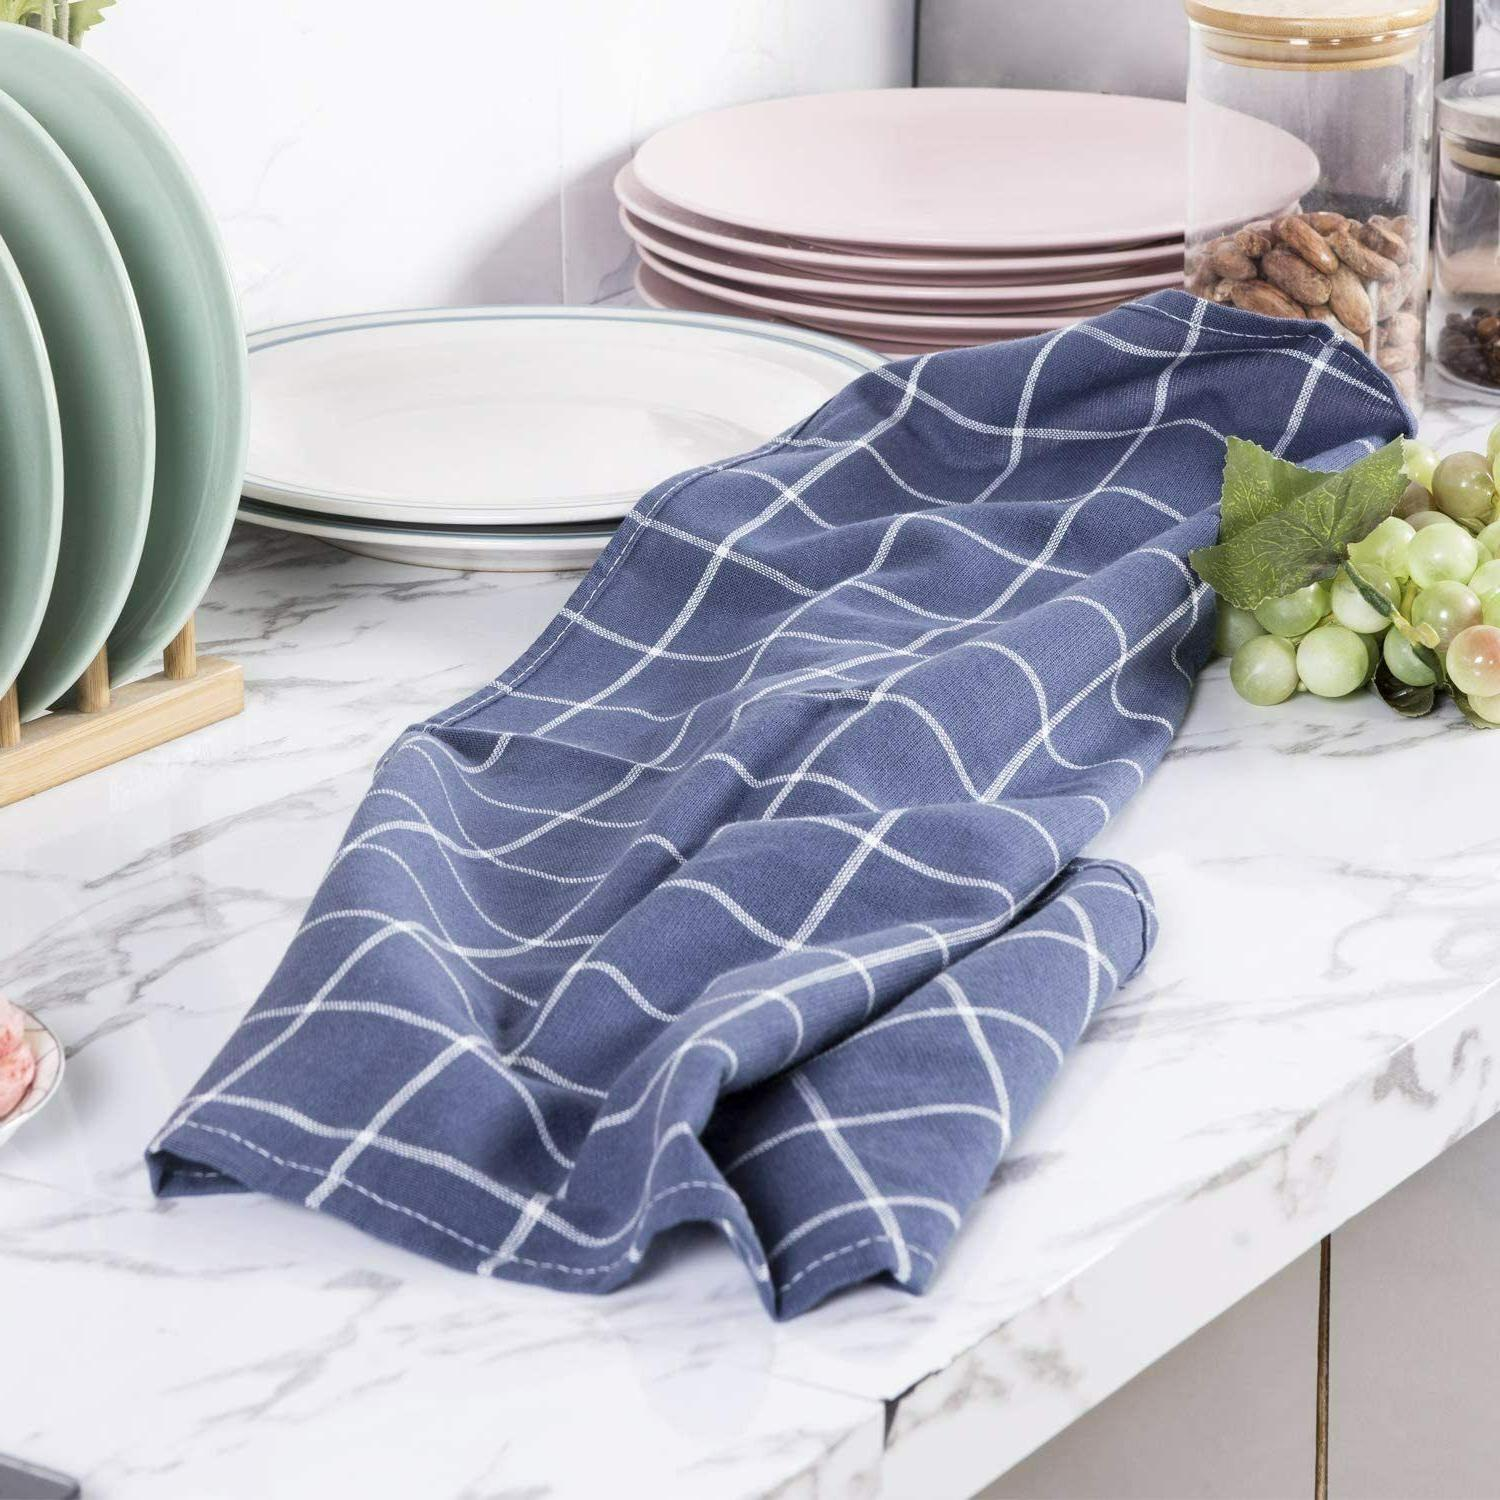 5 Pack Of Dish Towels,Absorbent Cotton Tea Towel Baking